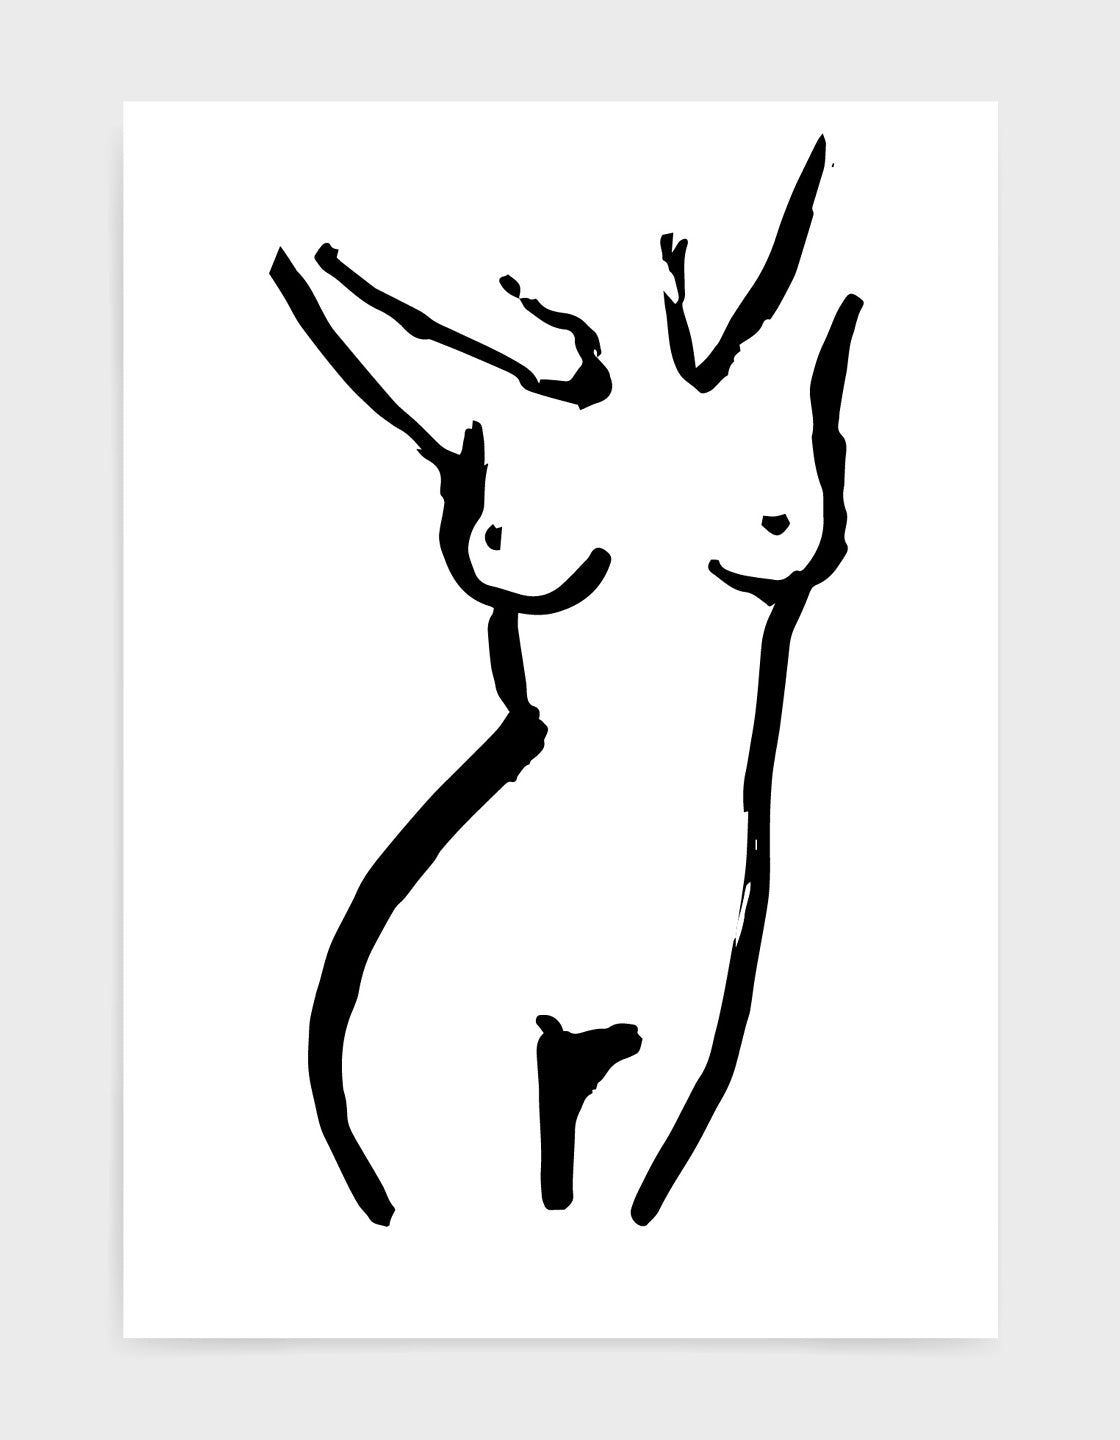 Monochrome line drawing of a female nude with hands behind her head